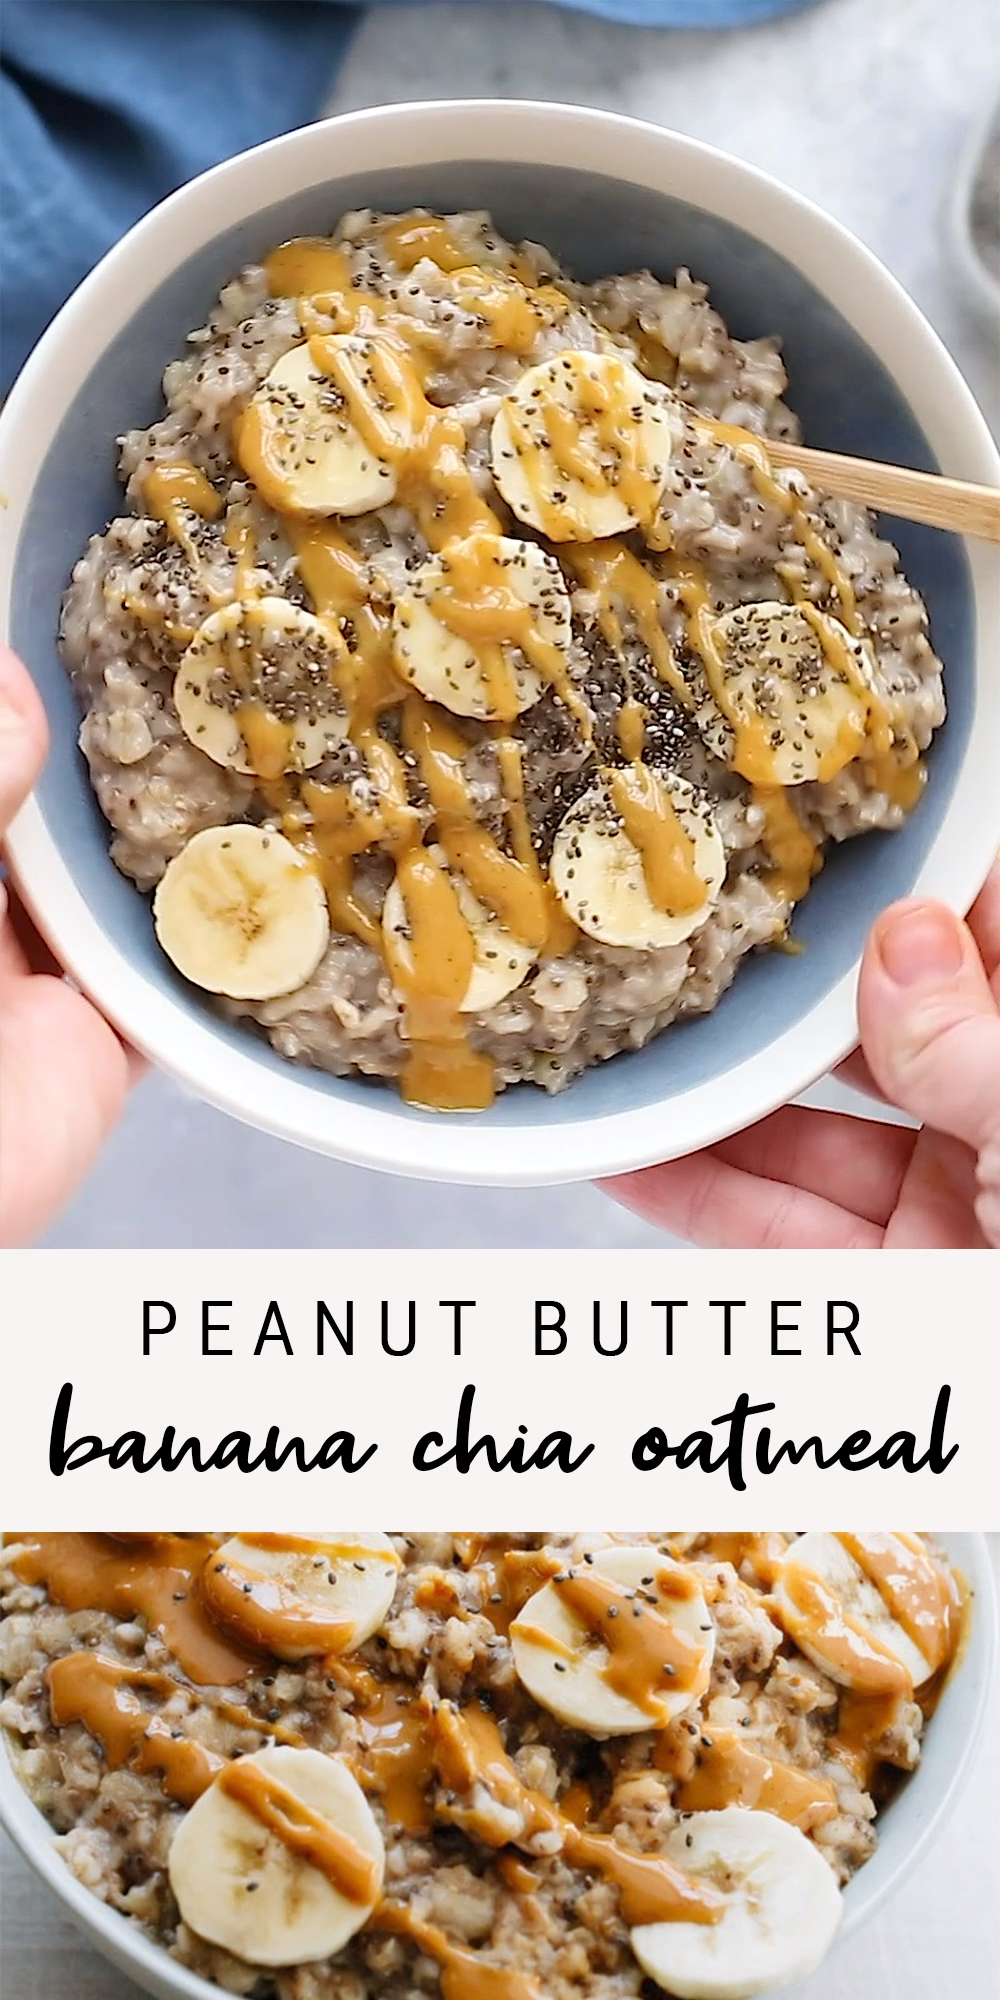 Peanut Butter Banana Chia Oatmeal #peanutrecipes